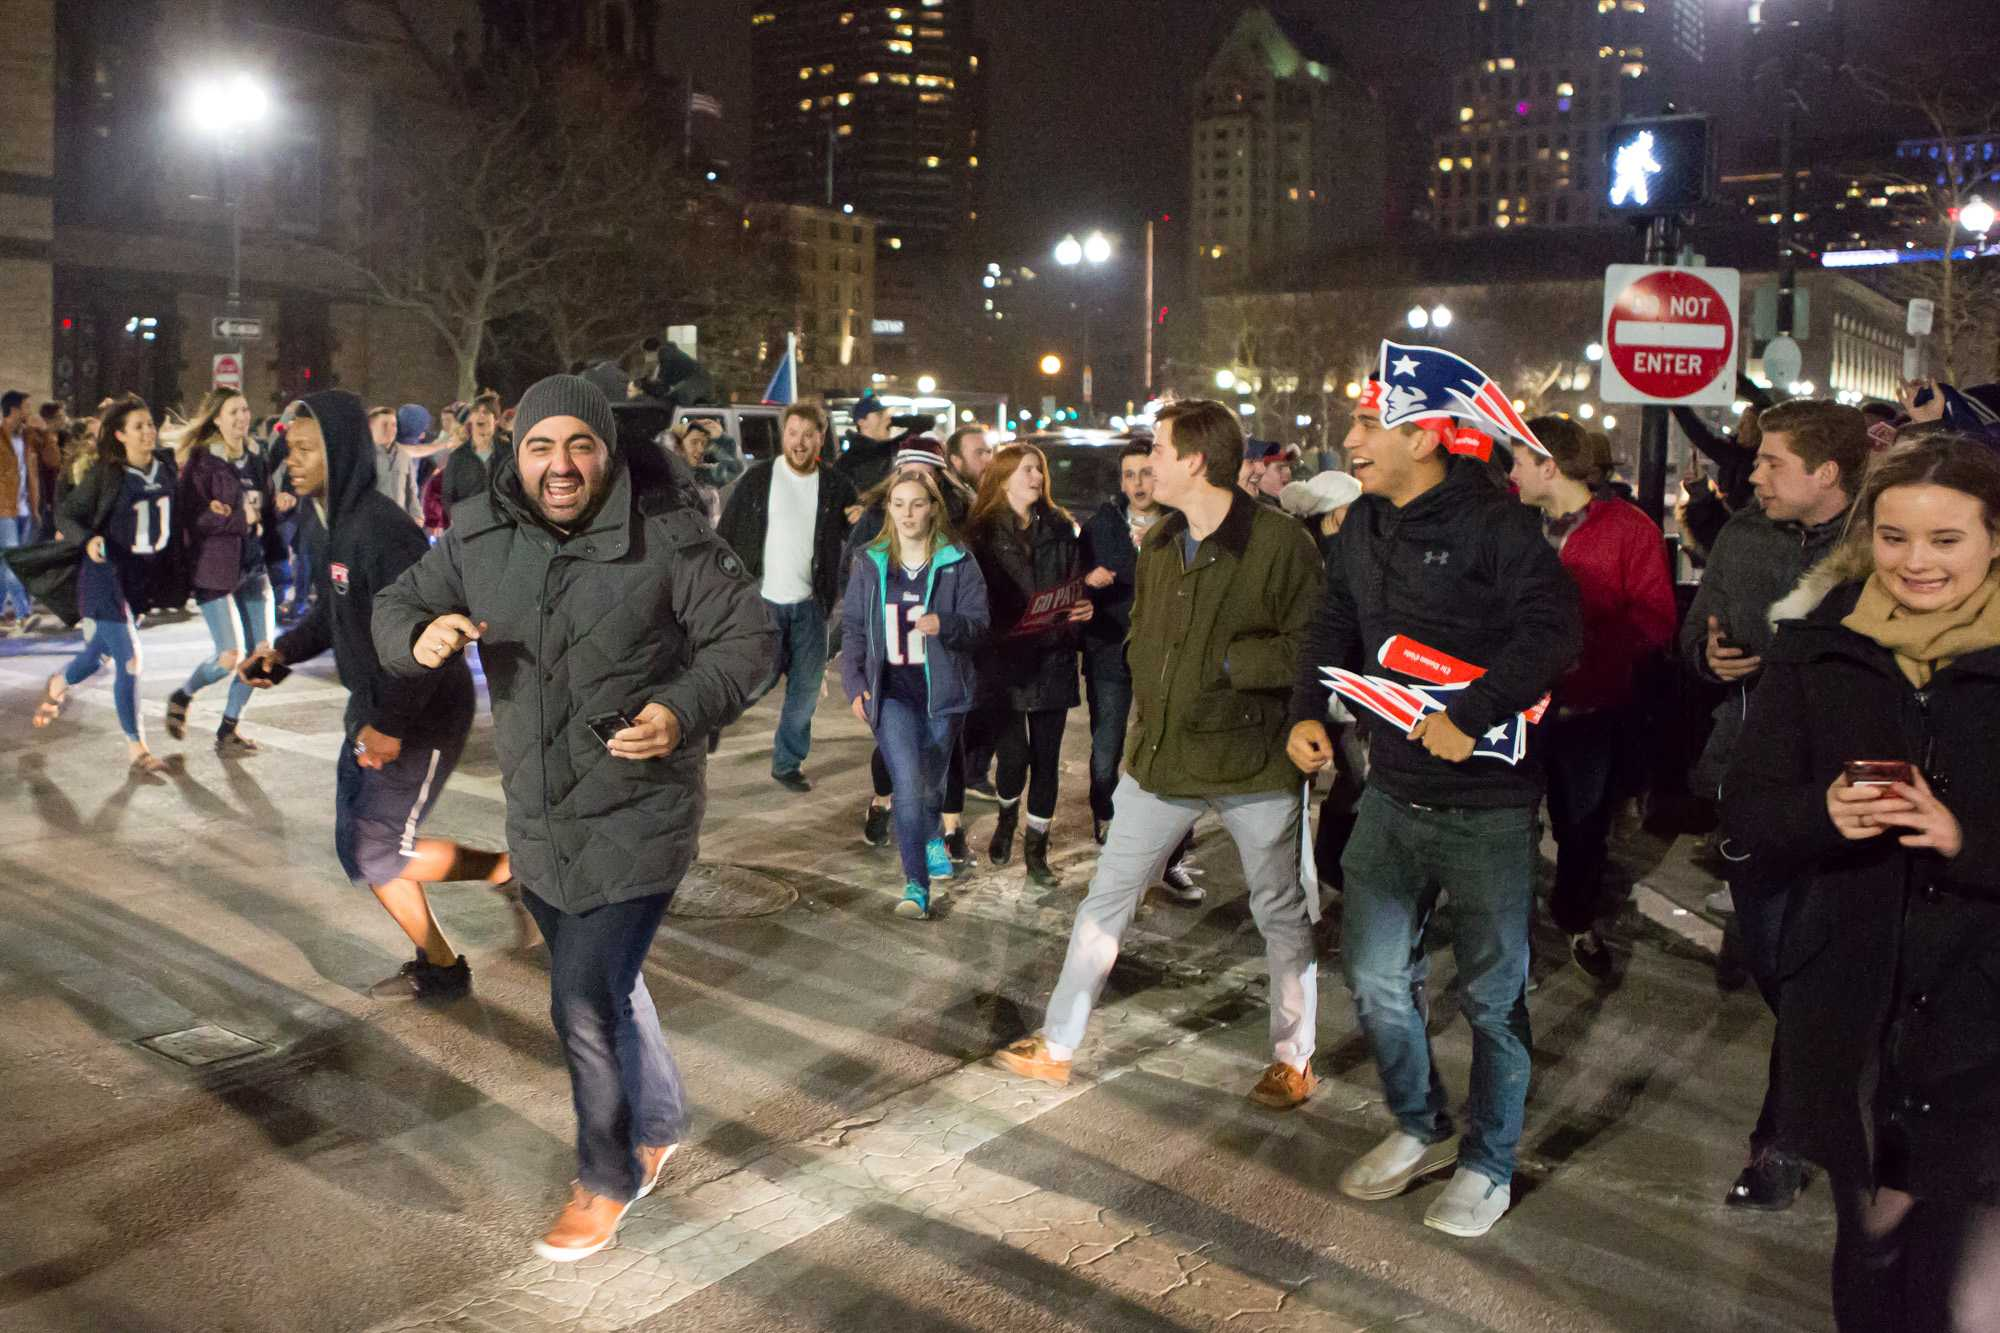 Pats+fans+take+to+the+streets+in+celebration+as+they+head+down+Boylston+Street+towards+the+Boston+Commons.